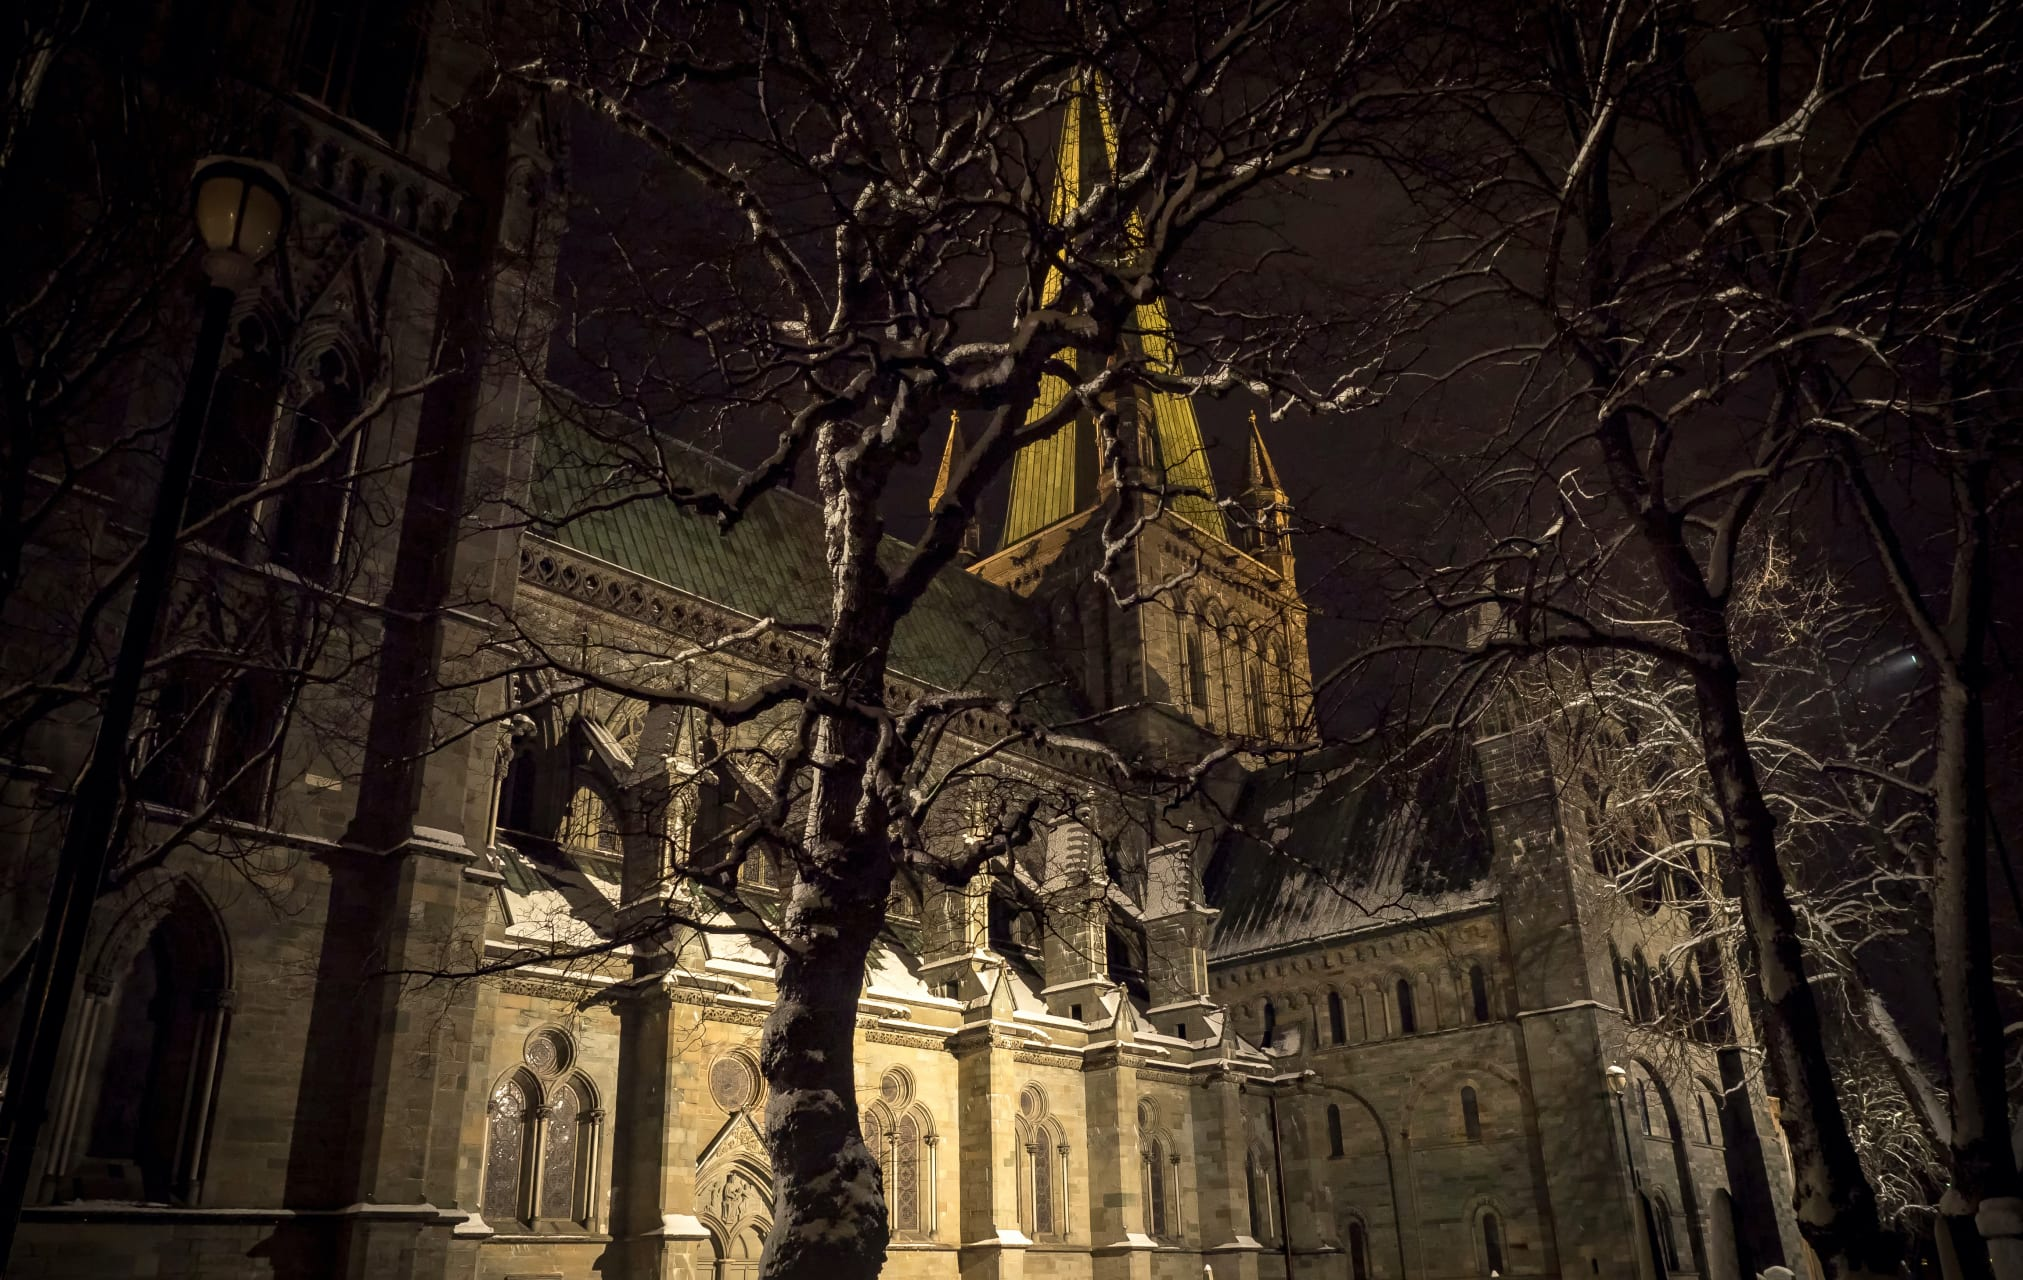 Trondheim - Trondheim at Night: The Cathedral, the Legends and the City